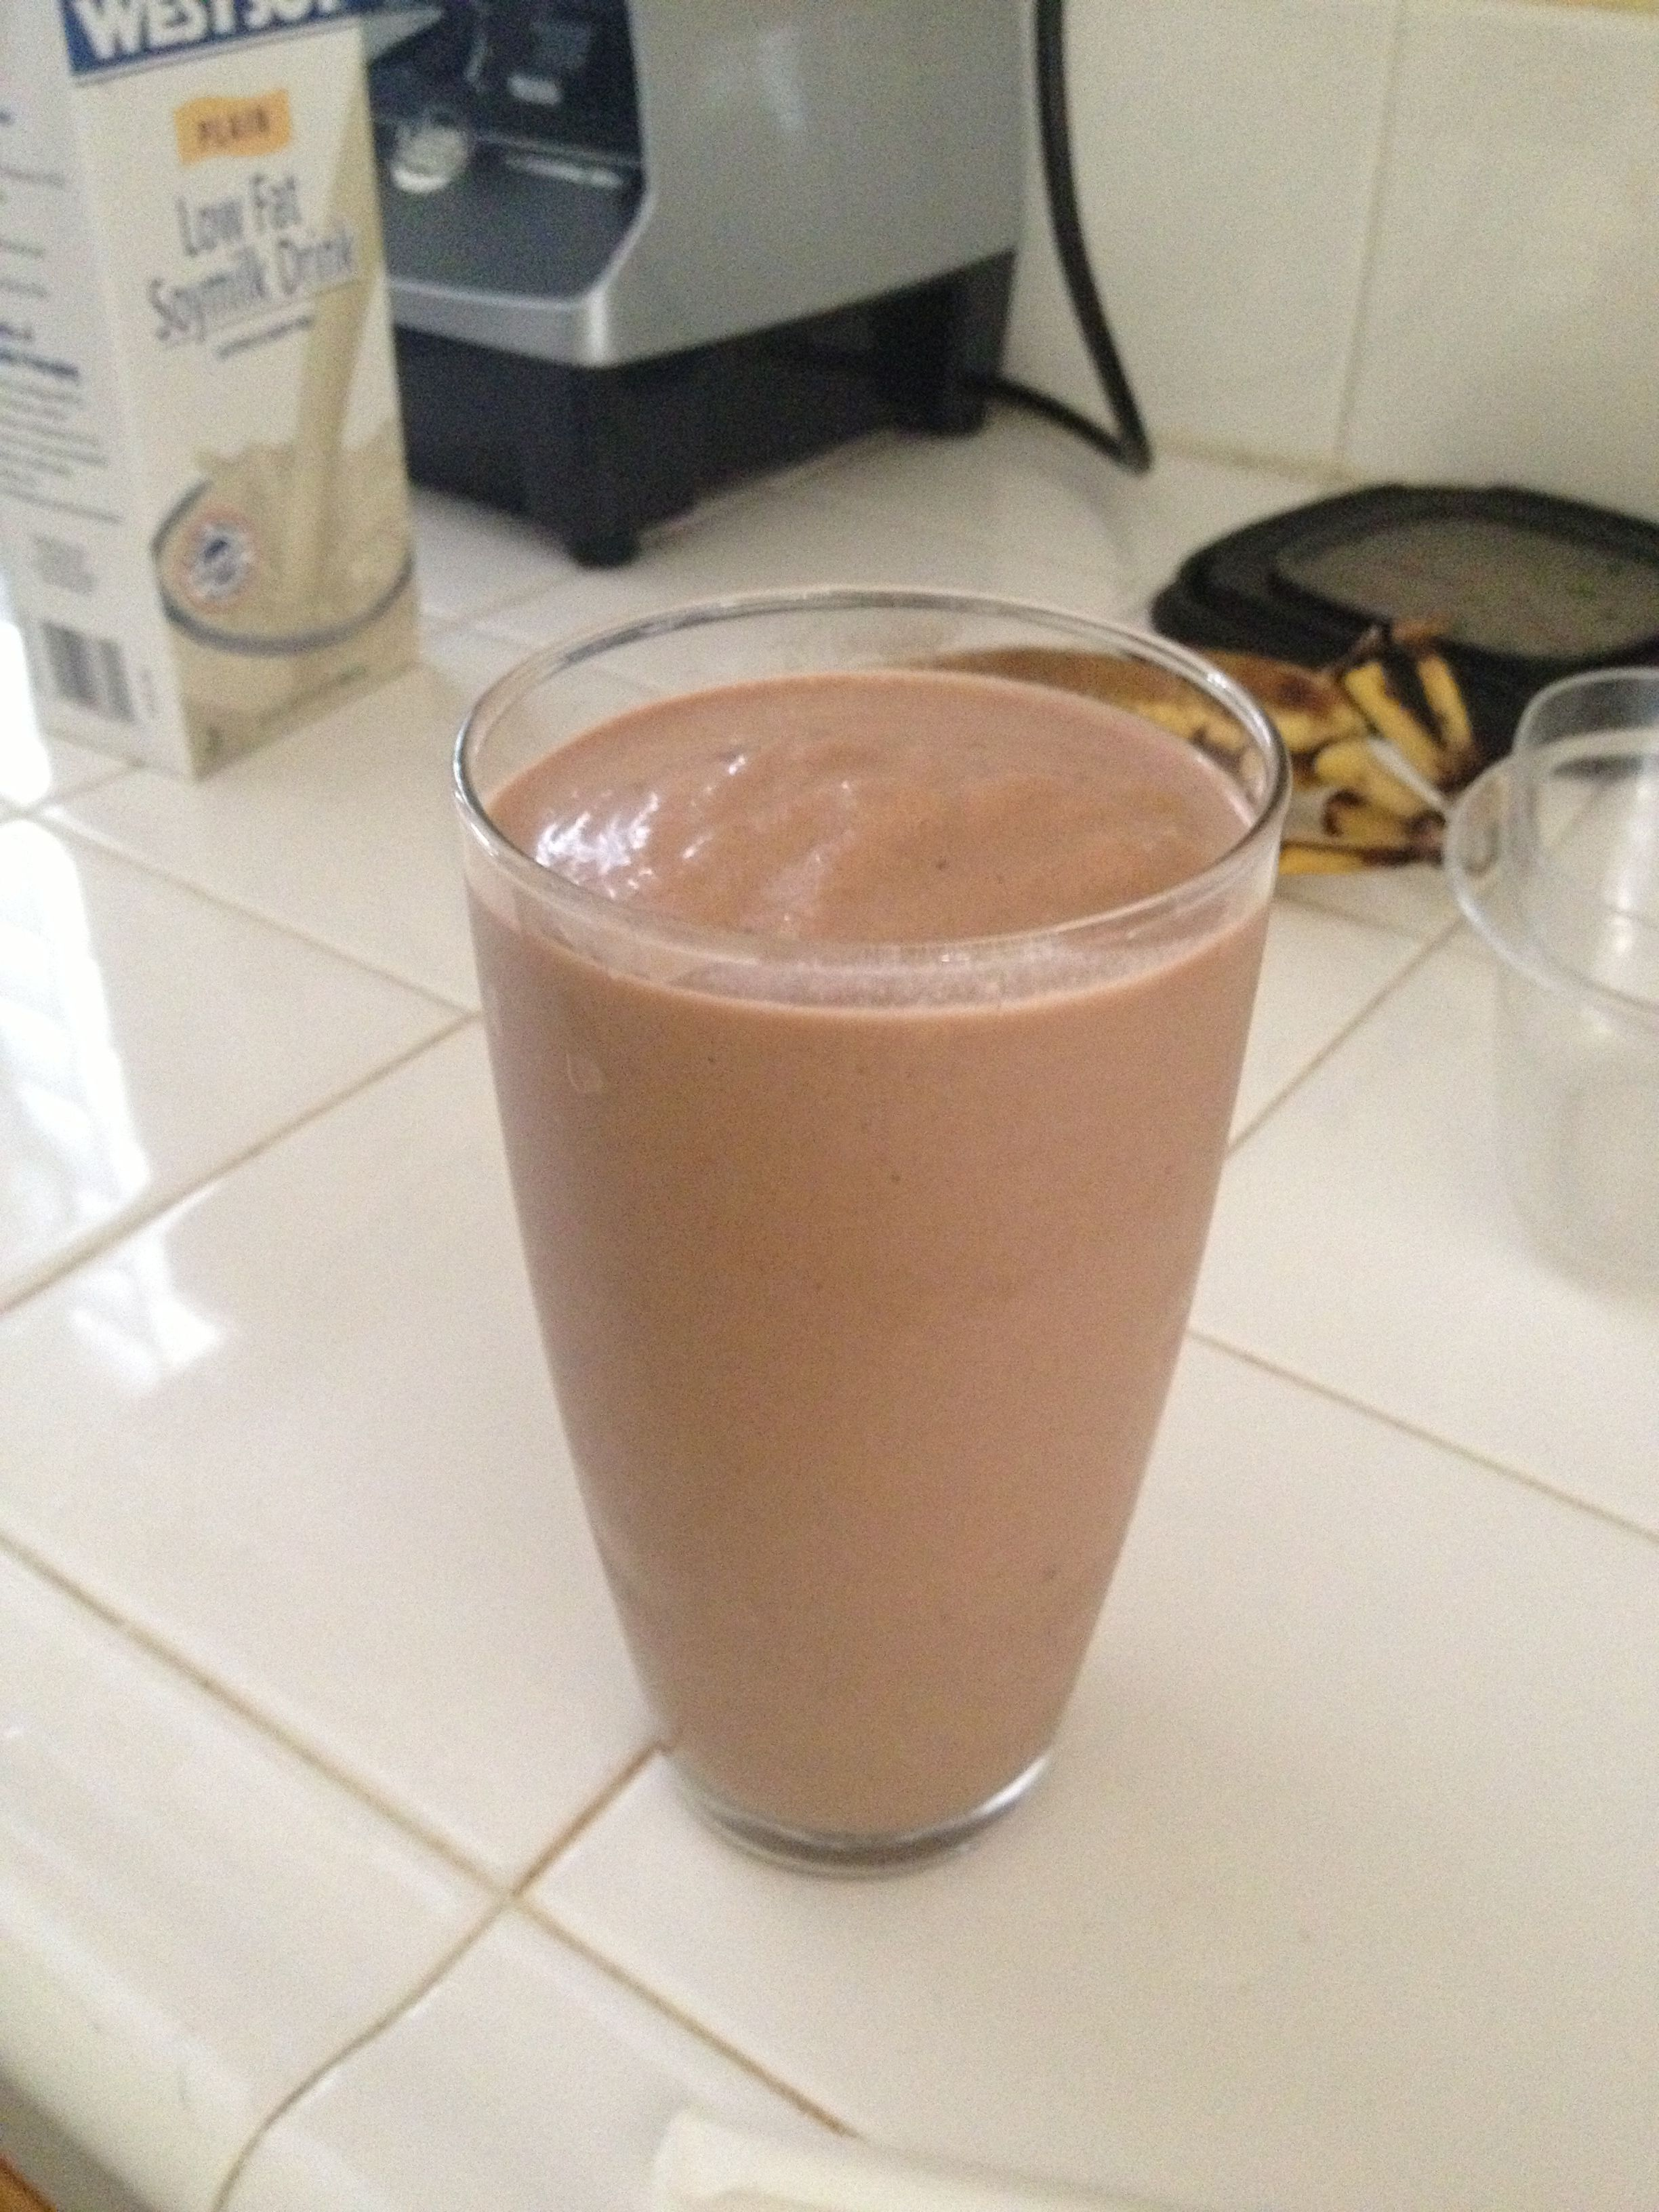 Healthy chocolate shake- Nutella, soy milk, chocolate protein powder, and bananas #healthychocolateshakes